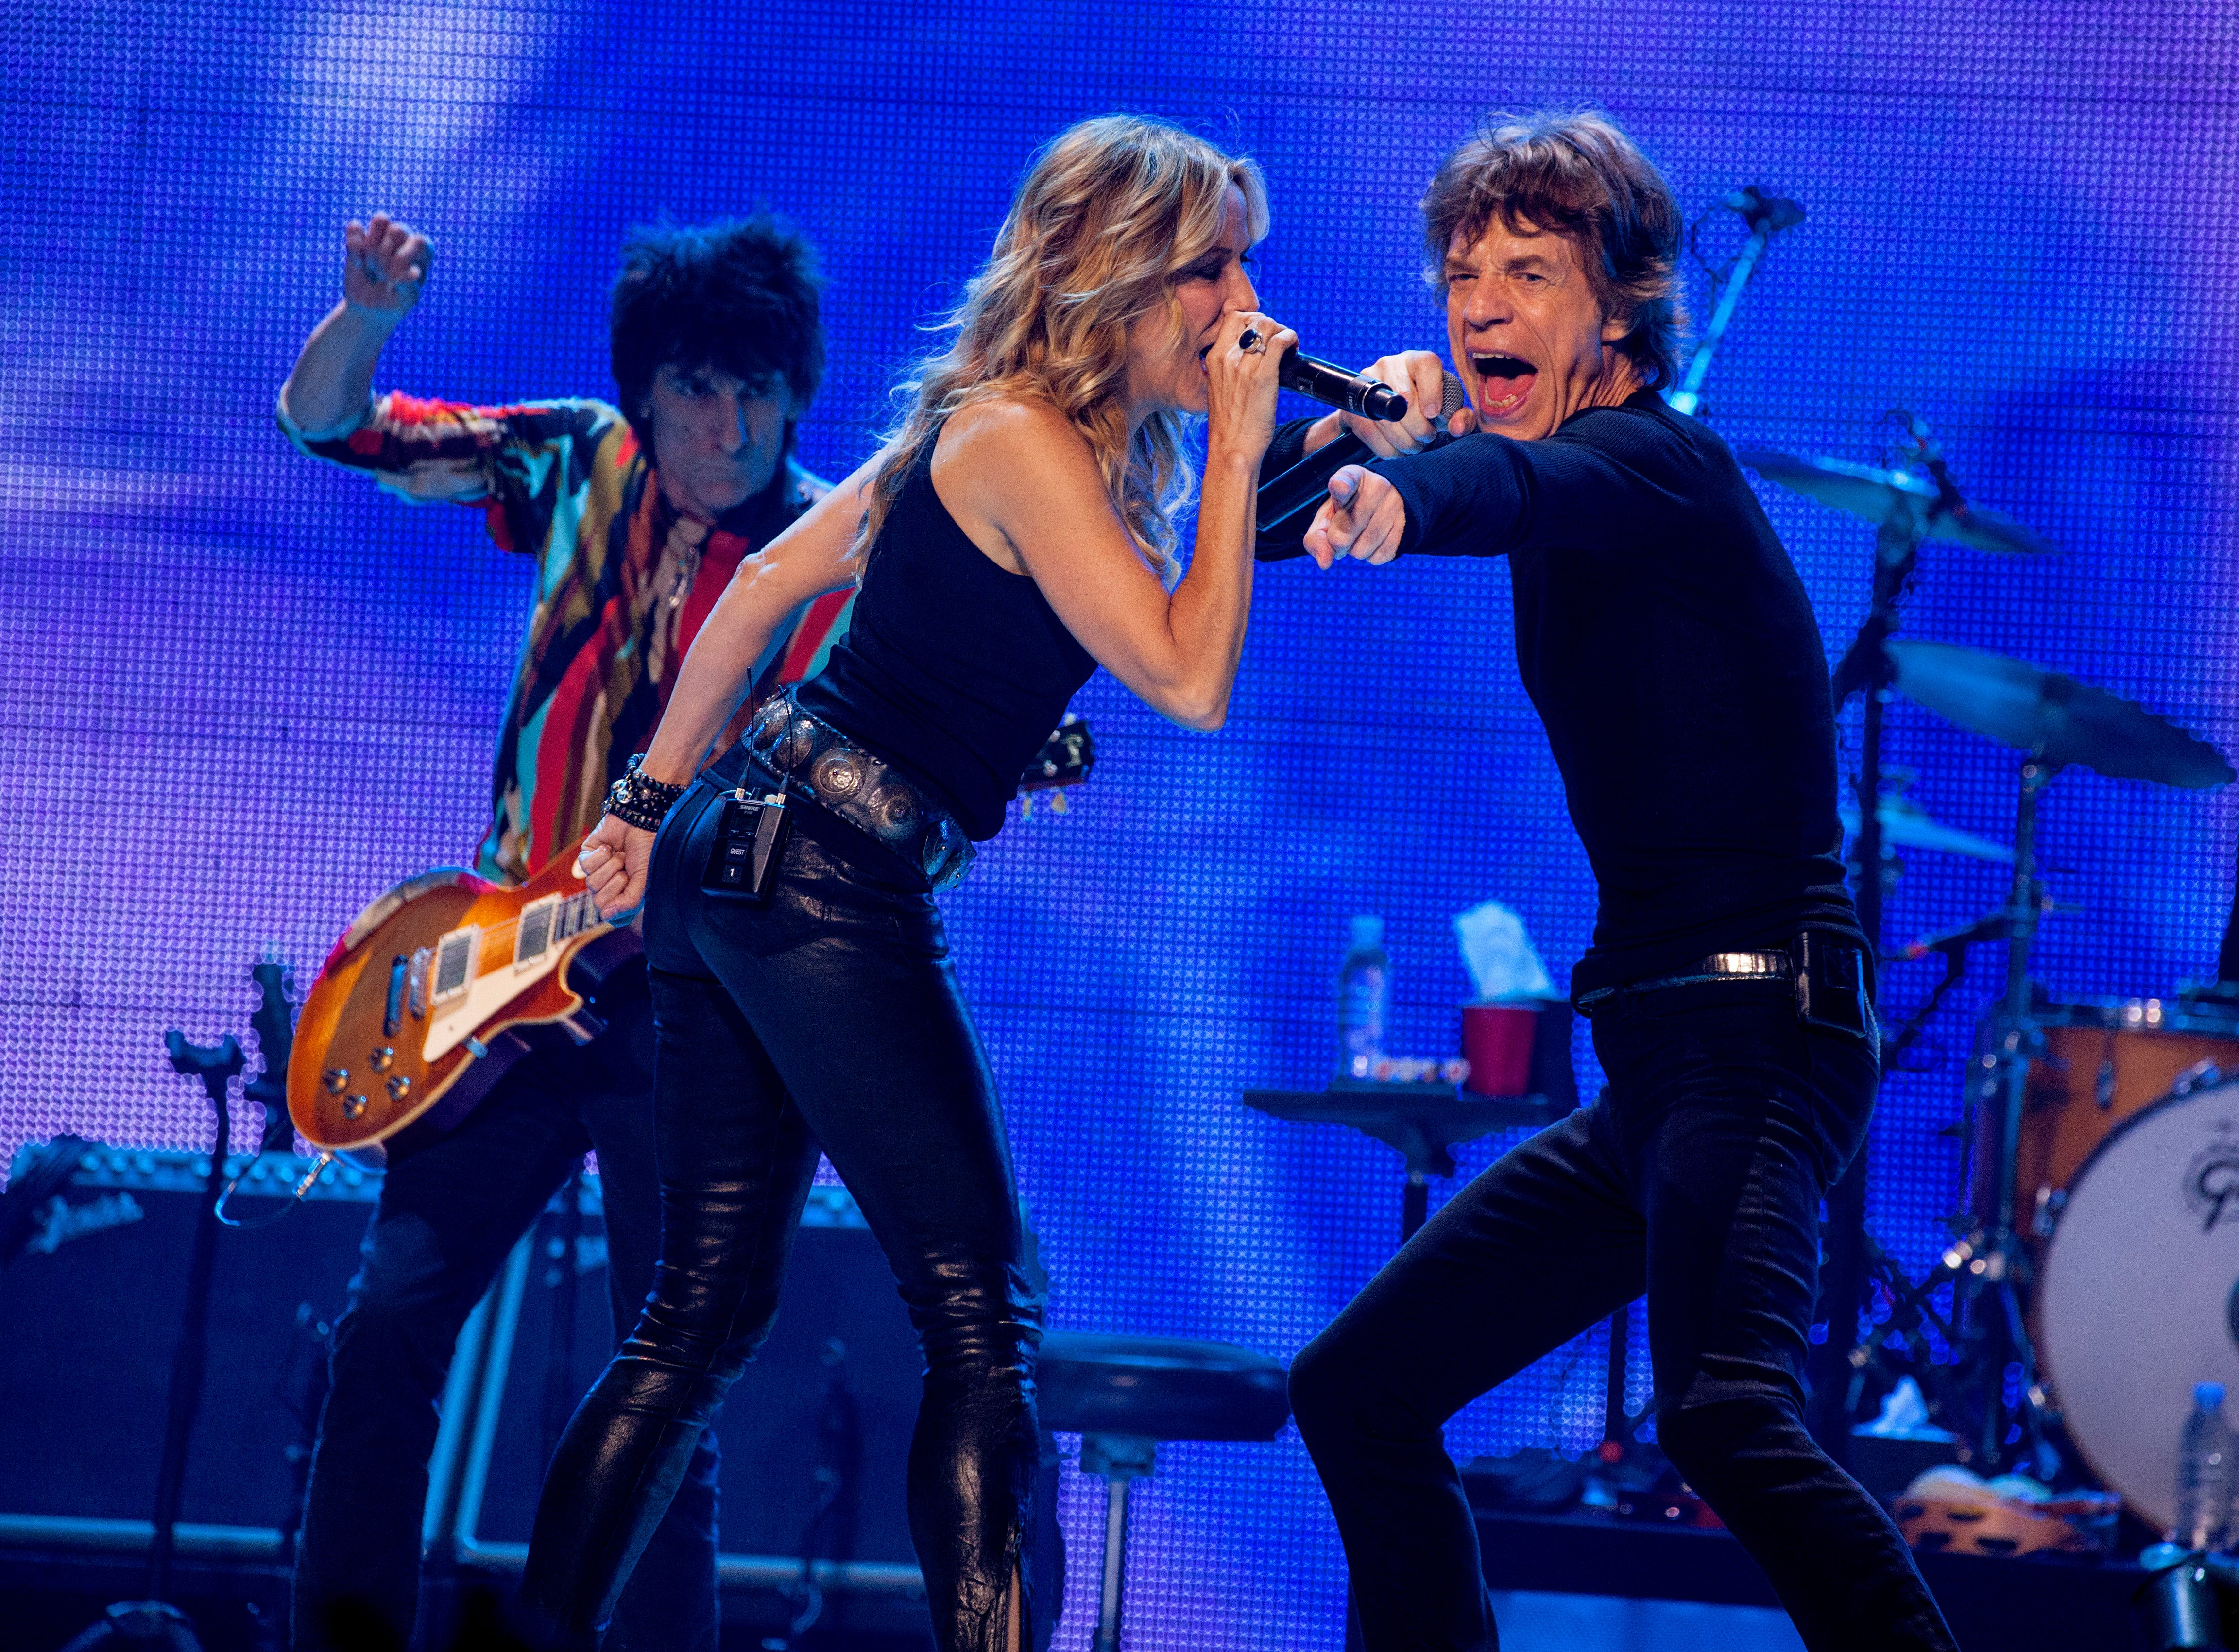 Ronnie Wood of the Rolling Stones with special guest Sheryl Crow and Mick Jagger of the Rolling Stones perform at the United Center on Friday, May 31, 2013 in Chicago. (Photo by Barry Brecheisen/Invision/AP) ORG XMIT: ILBB105